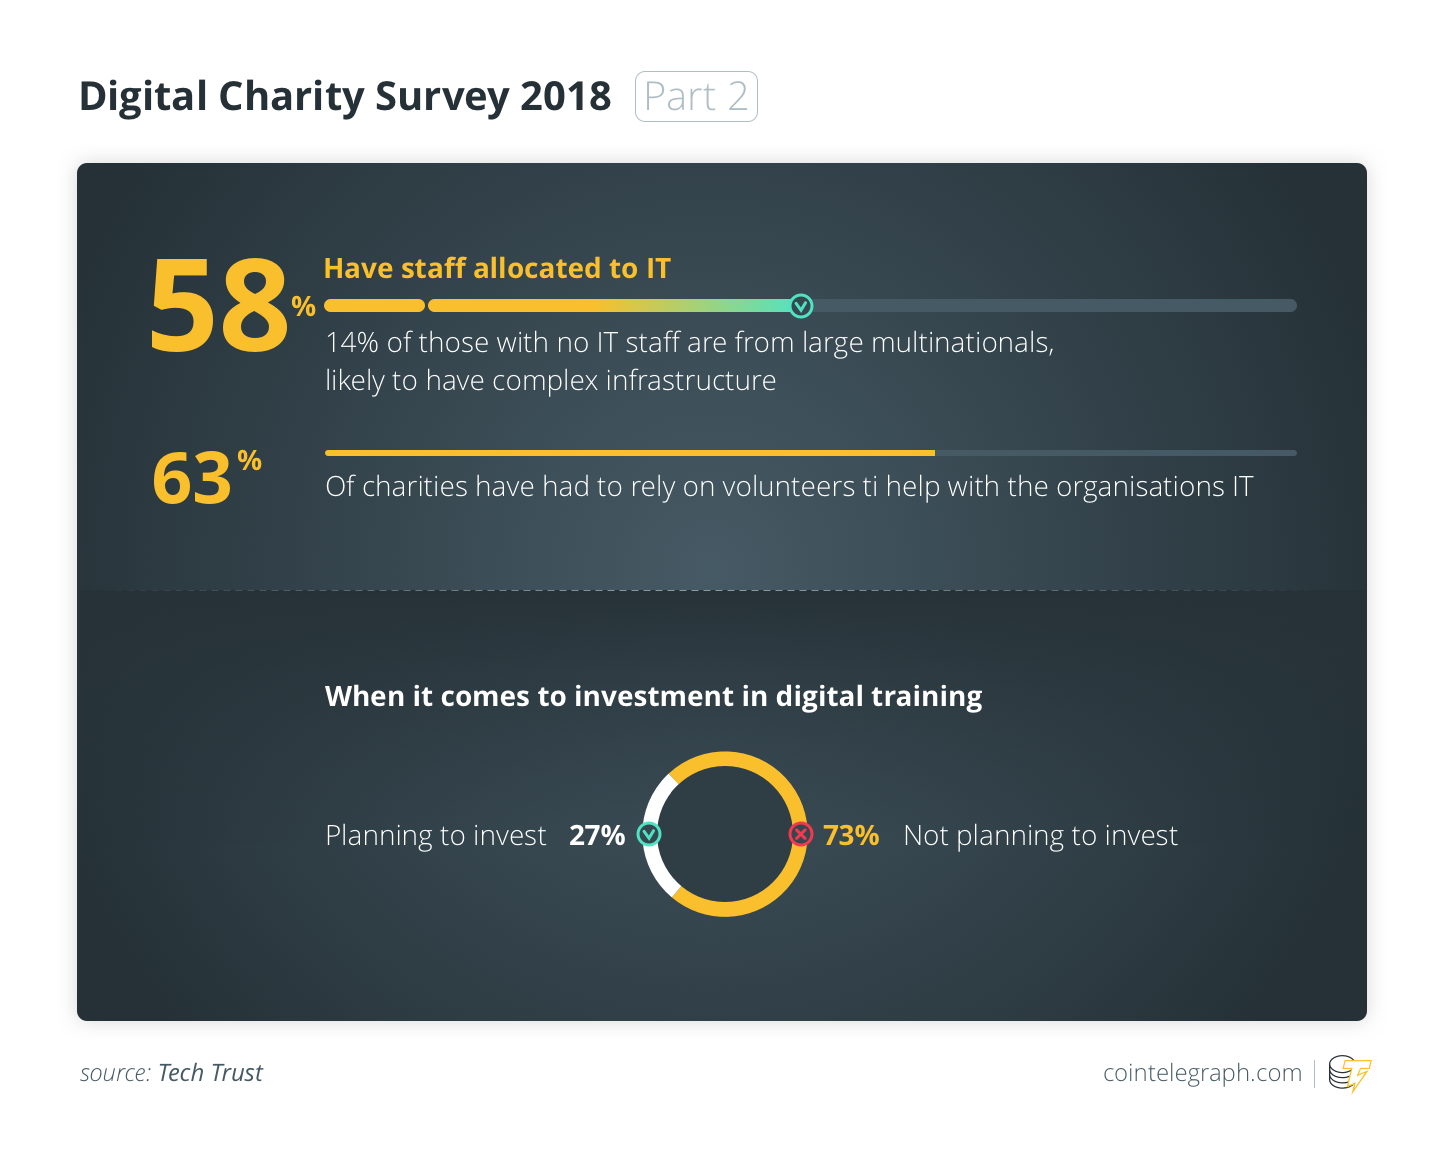 Digital Charity Survey 2018 (Part 2)